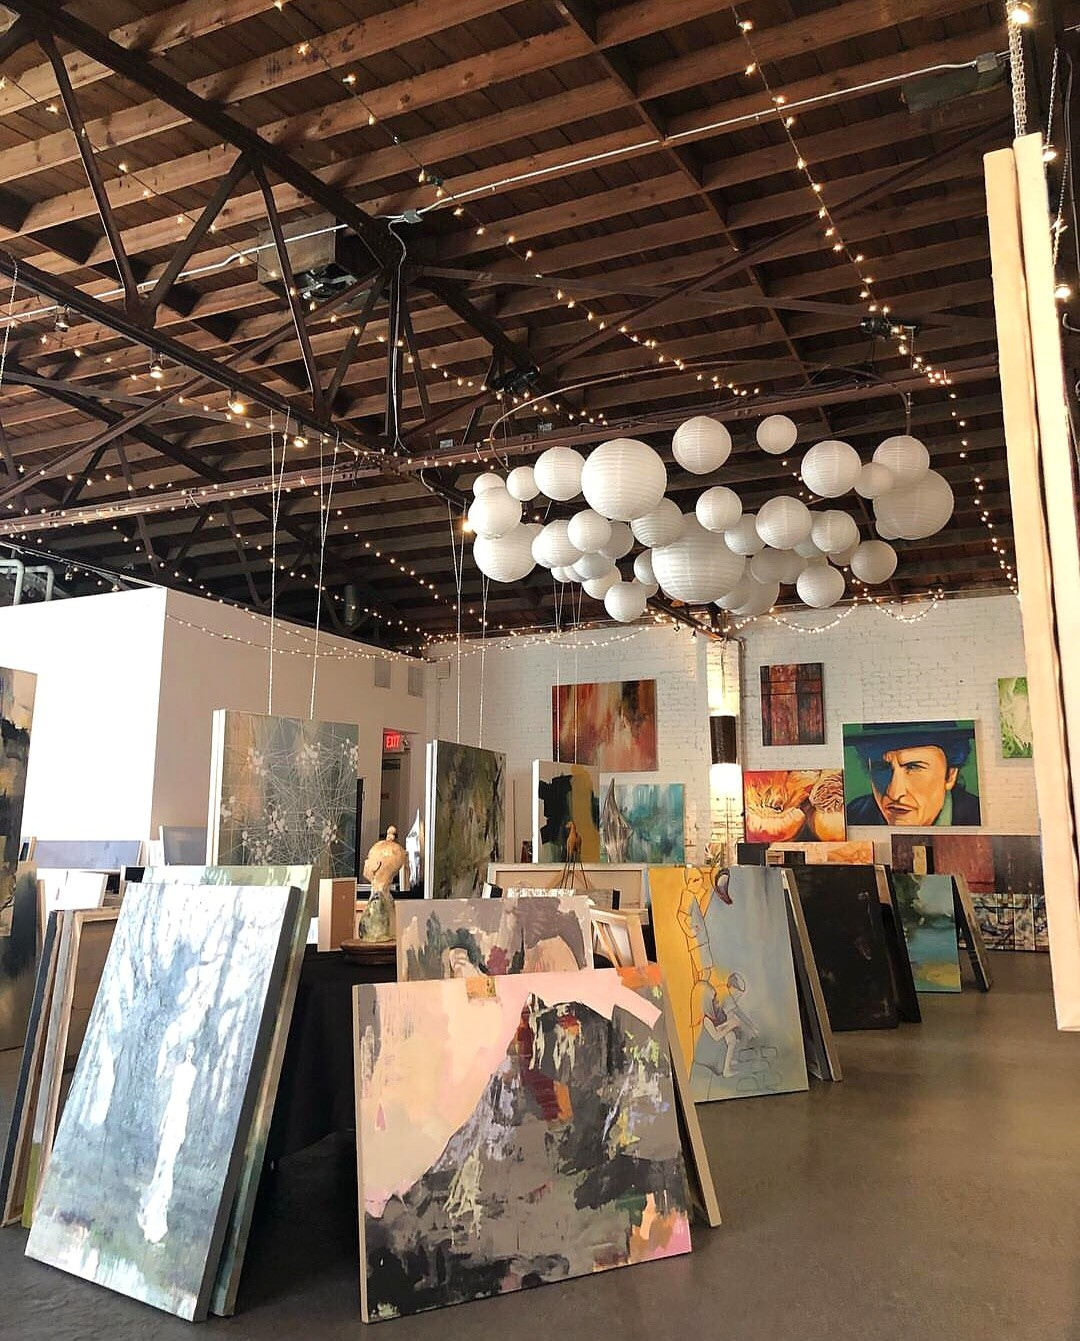 Angela Faustina and other artists paintings at For the Love of Art 3 Day Popup Show, Marietta, GA, 2018